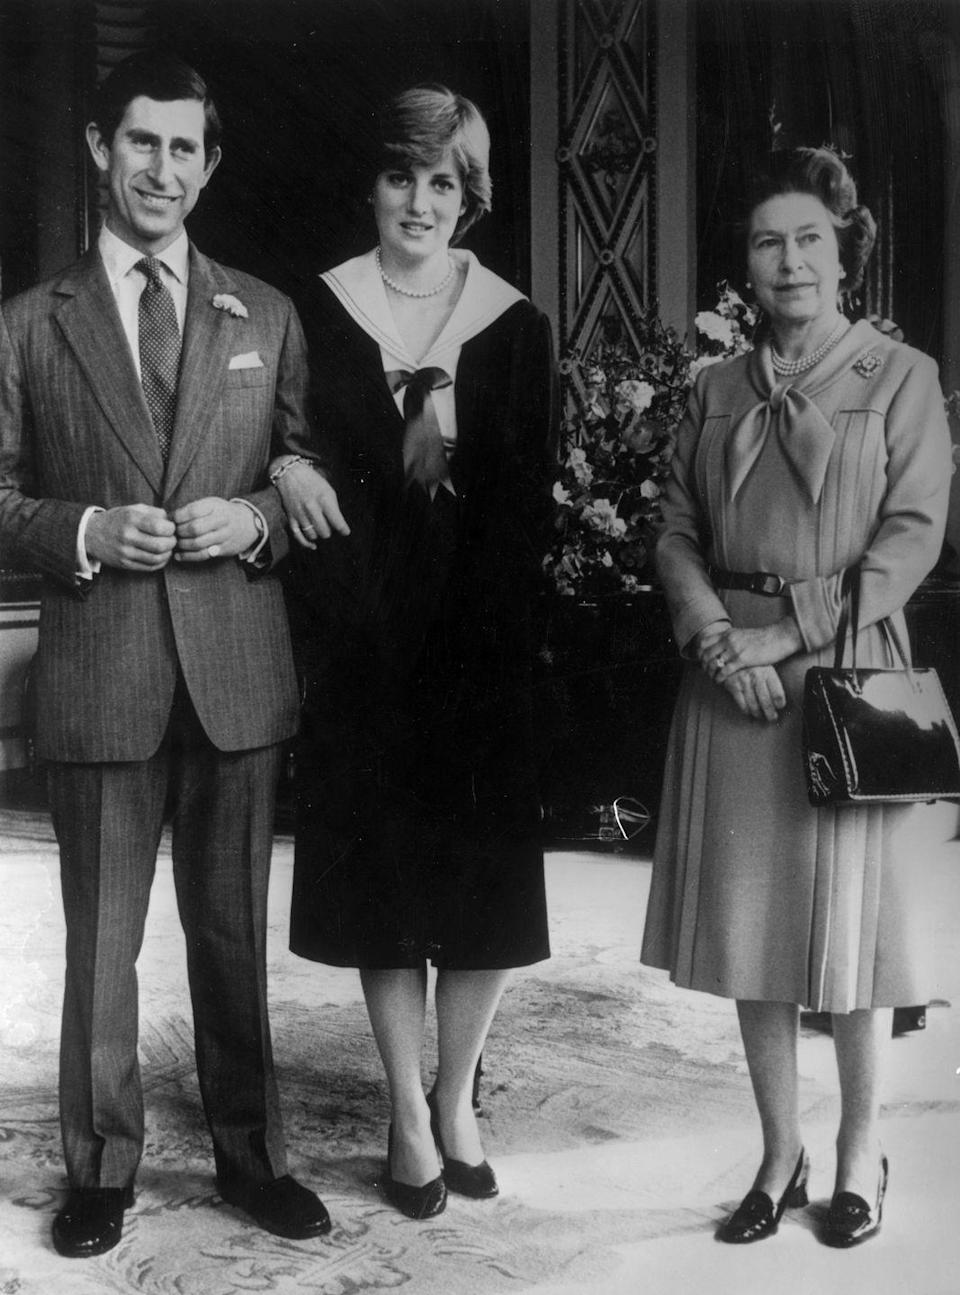 <p>Prince Charles and Diana pose with Queen Elizabeth II at Buckingham Palace after she gave her consent for their wedding. Is it just me or does everyone look rather...tense?</p>